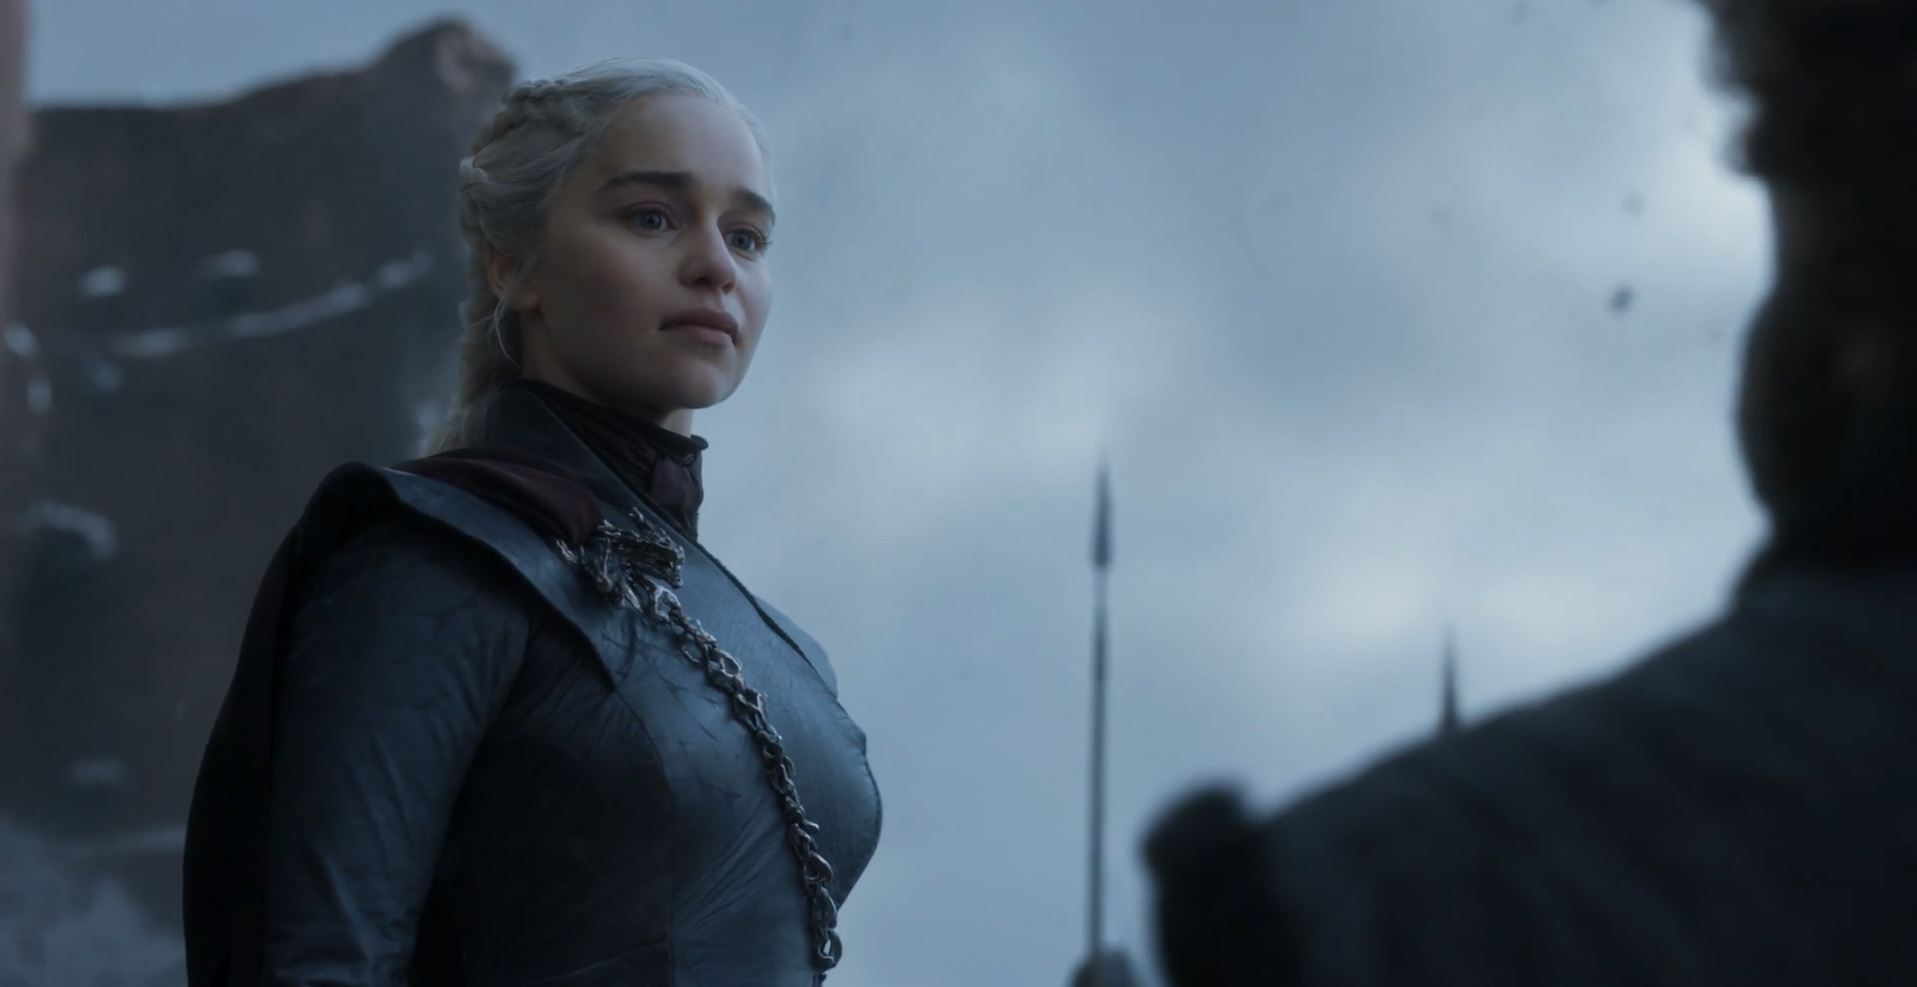 Game of Thrones S08E06 Review - Dany has Tyrion arrested